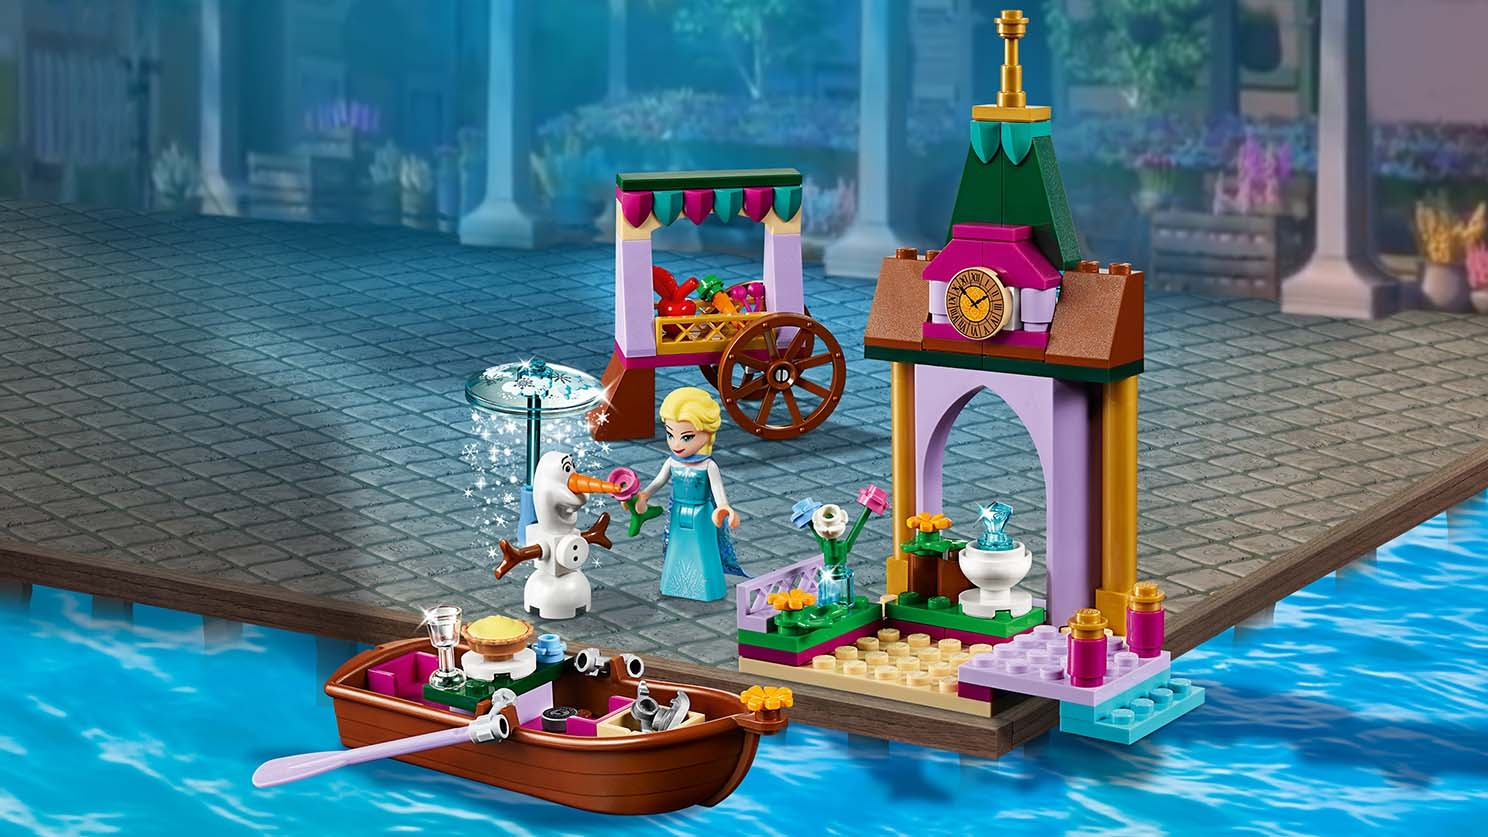 LEGO Disney - 41155 Elsa's Market Adventure - Elsa enjoys a summer day on the Arendelle Market Place shopping for vegetables together with Olaf who stays cold under his snow flurry.